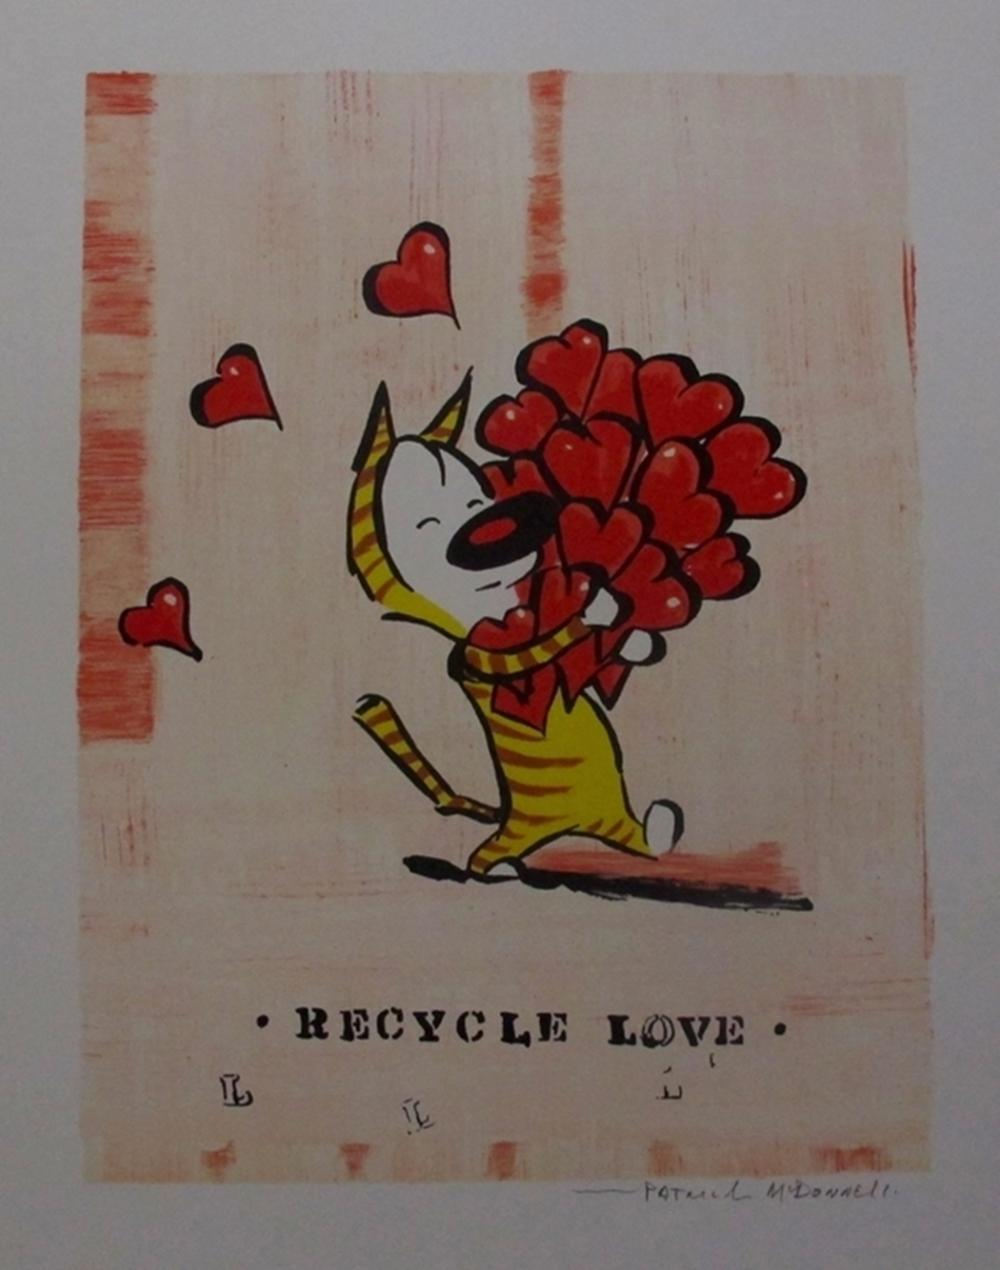 Patrick Mcdonnell Recycle Love